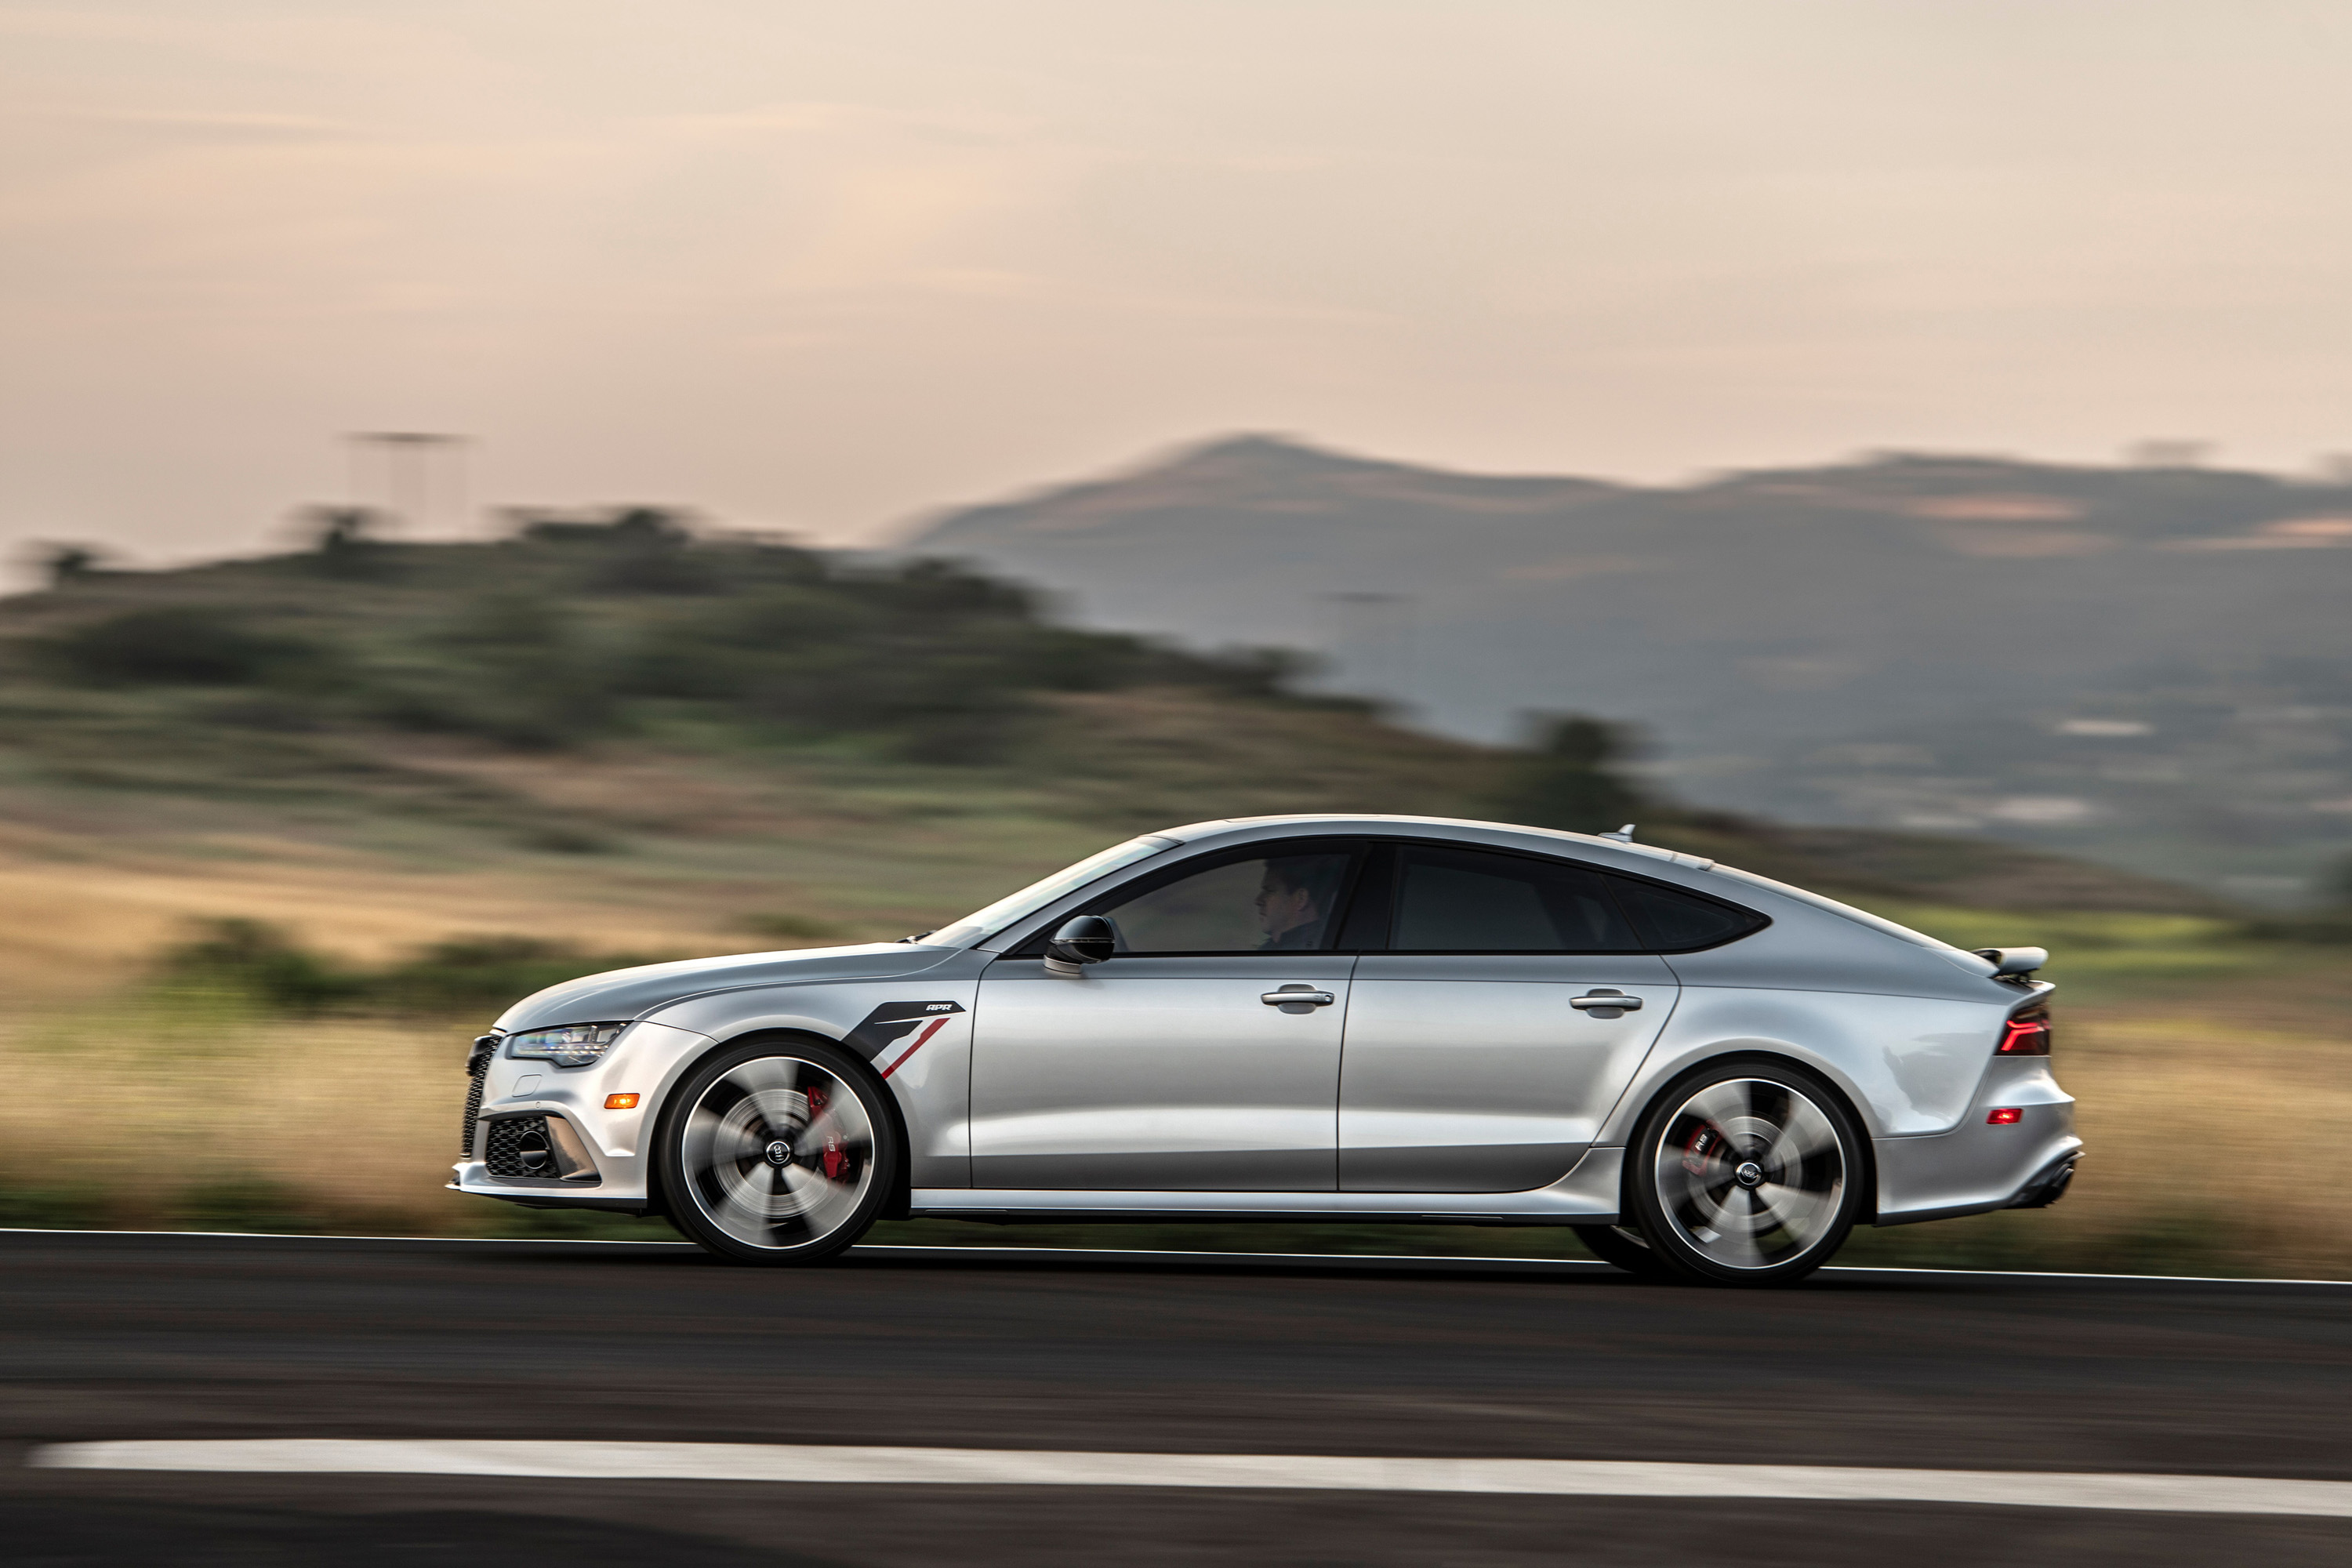 Addarmor Rs7 Is The Real World James Bond Car Of Your Dreams